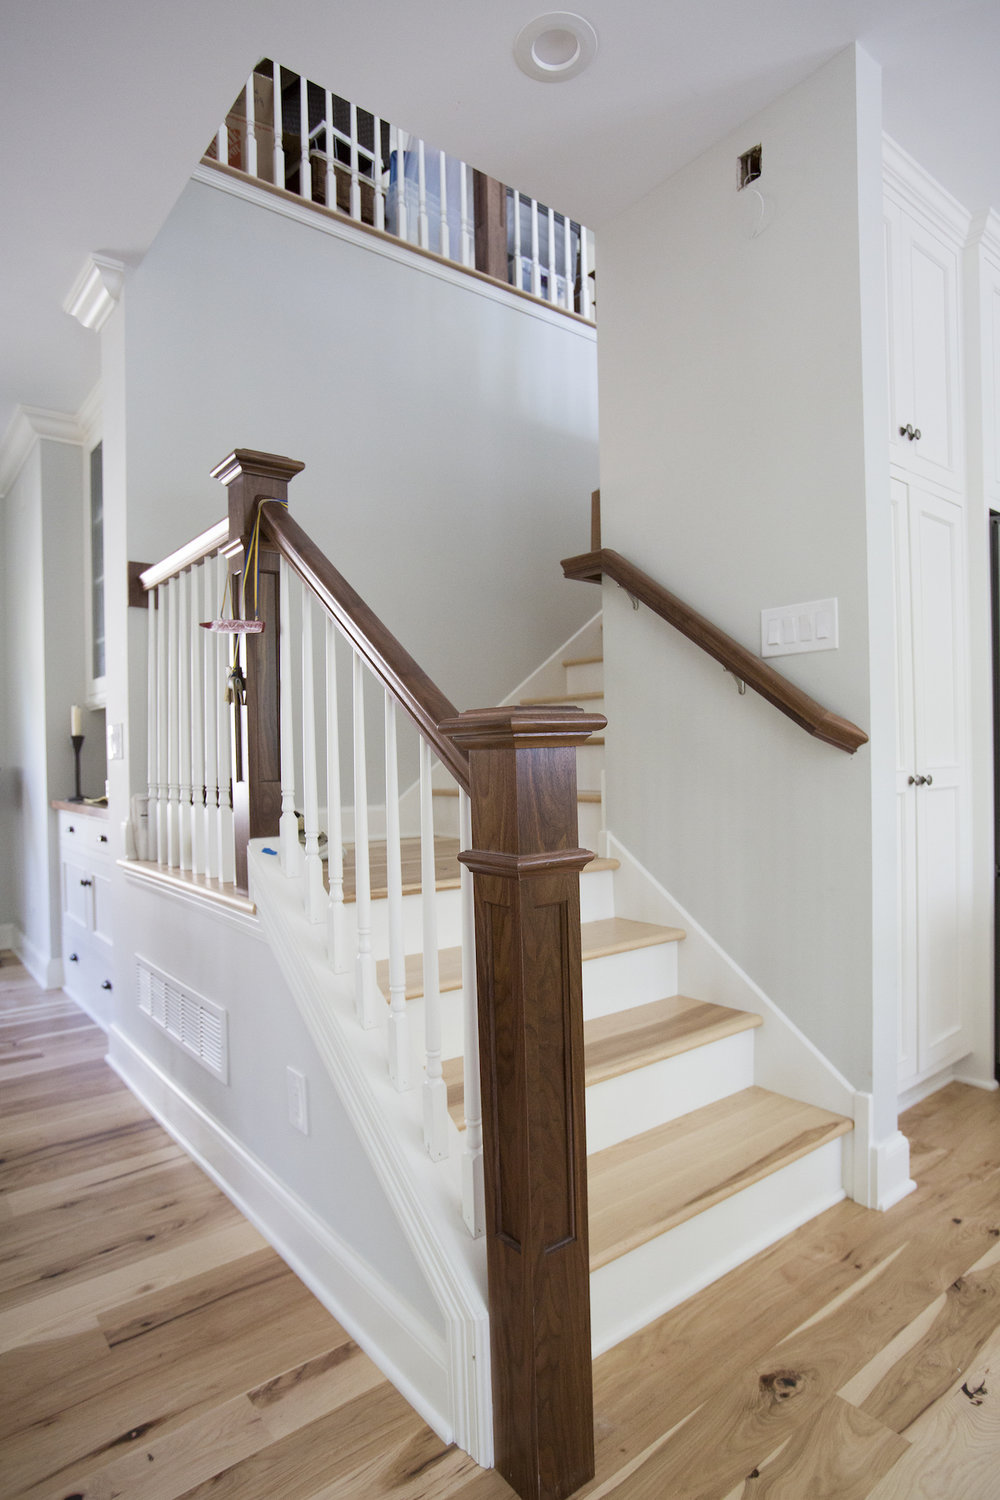 Open concept staircase with hardwood floors